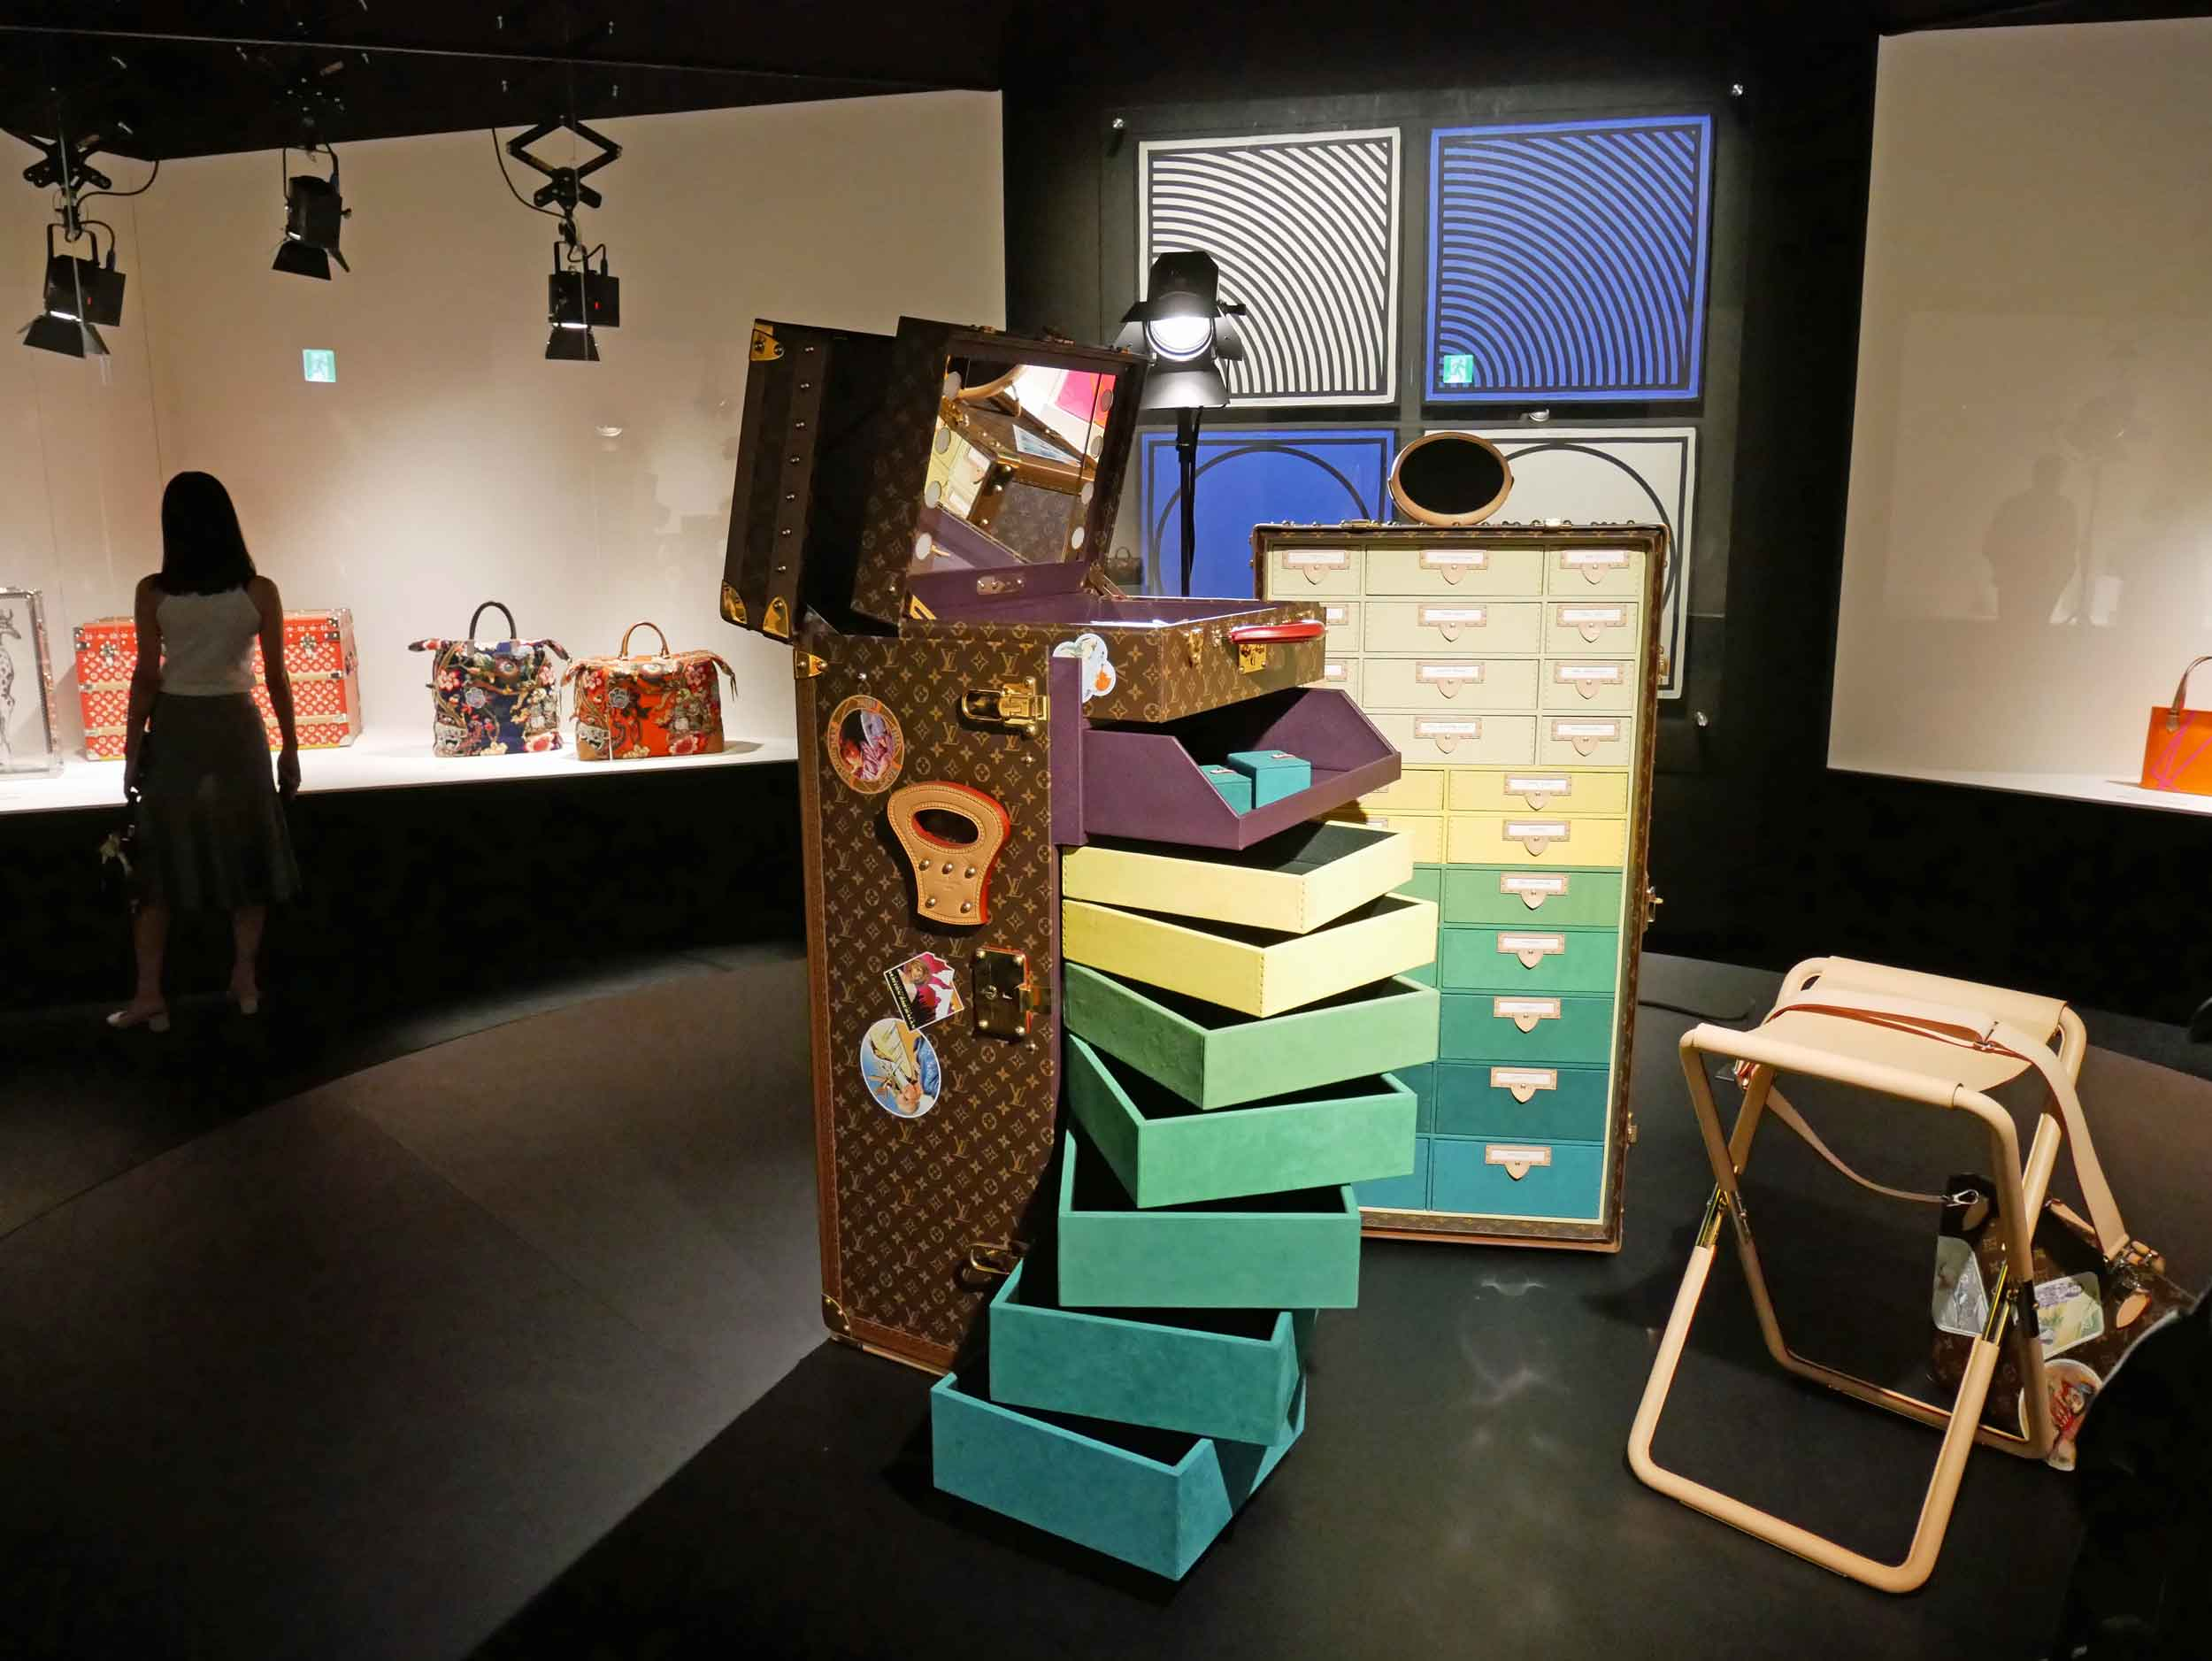 LV enthusiasts travel a little differently on their voyages around the world--no backpacks in this exhibit!